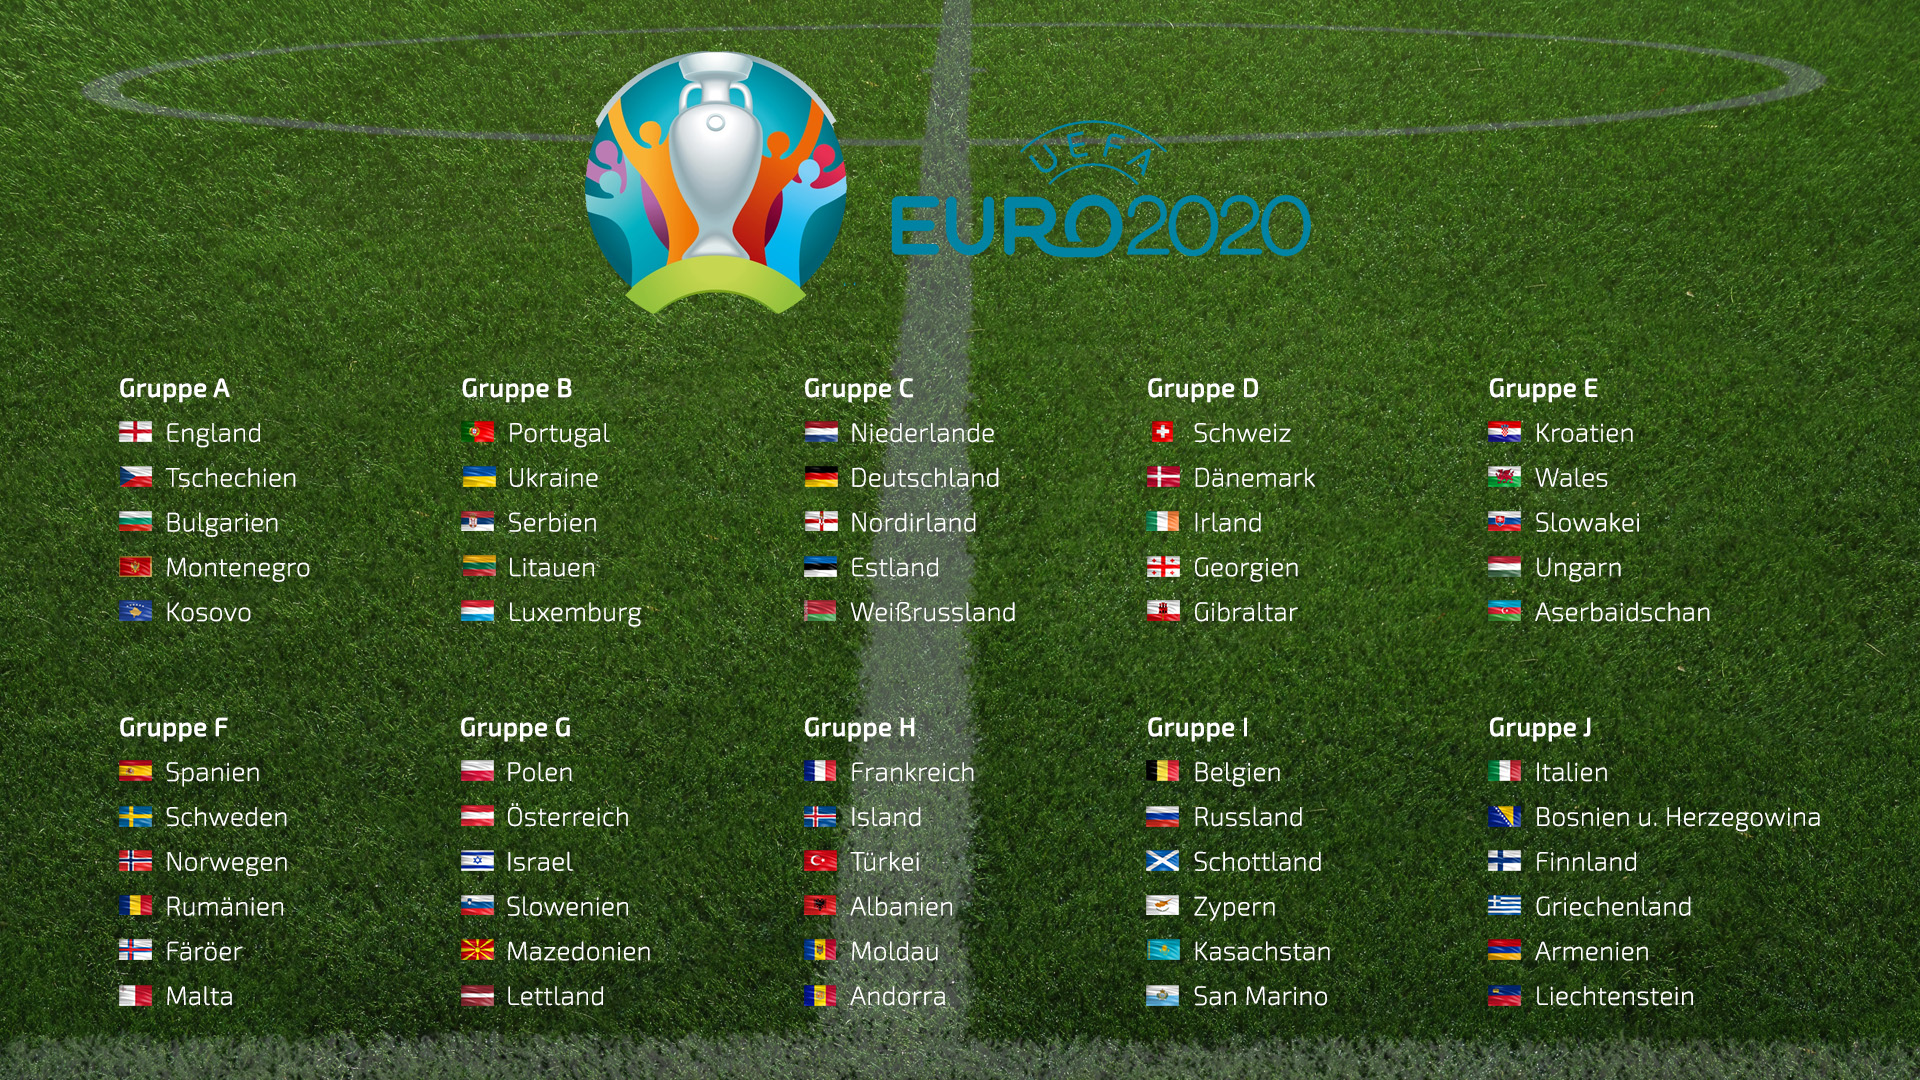 FuГџball Em Qualifikation 2020